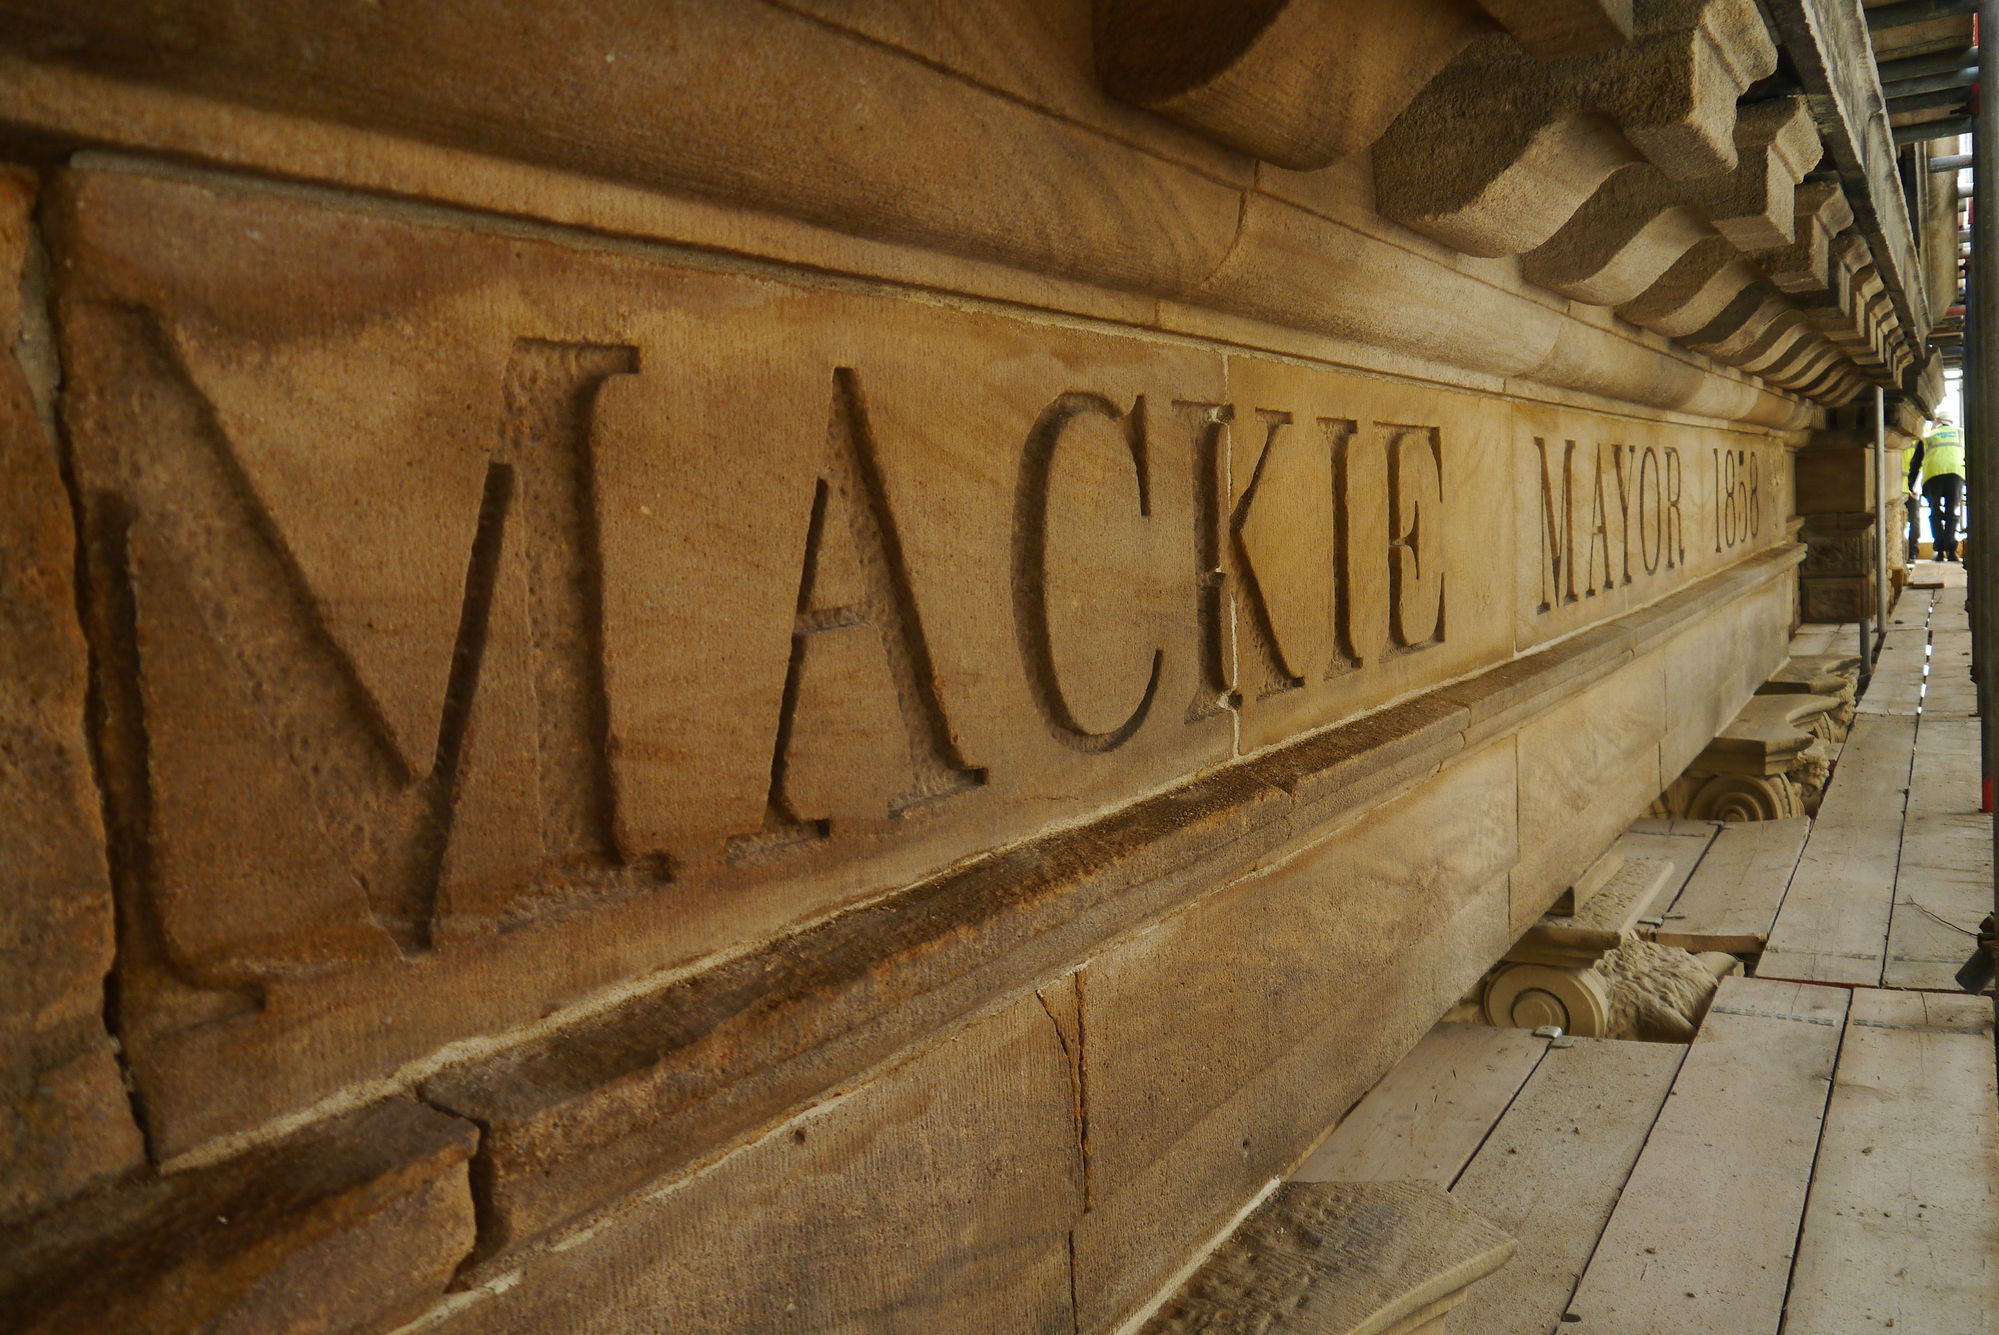 The Mackie Mayor